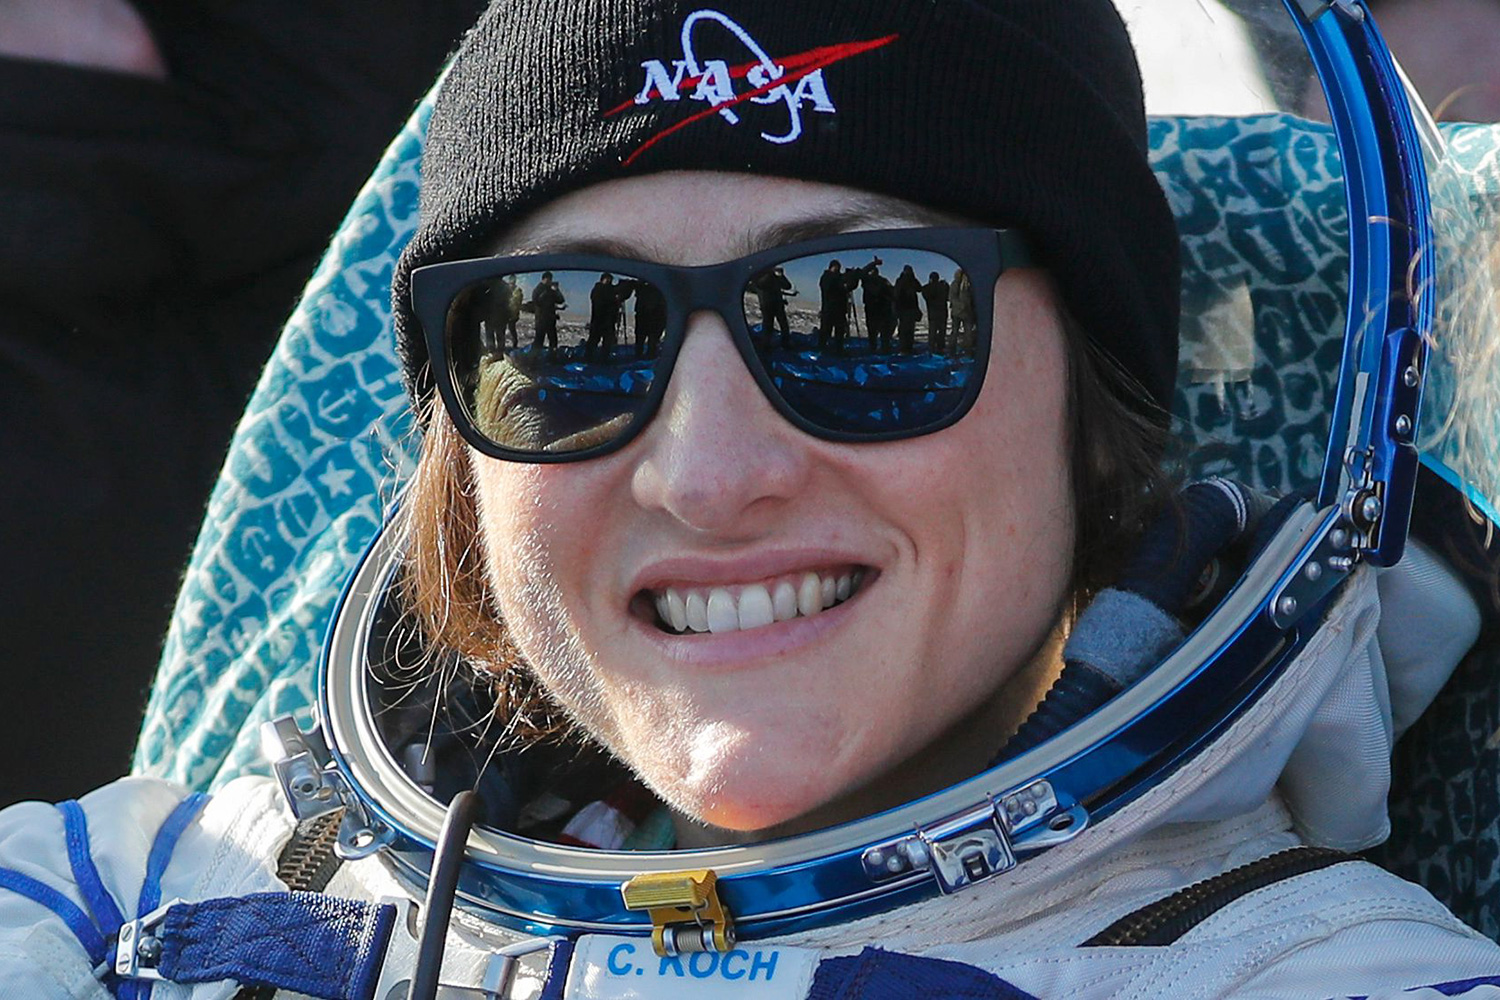 NASA astronaut Christina Koch smiles shortly after Russian Soyuz MS-13 space capsule landing in a remote area southeast of Zhezkazgan in the Karaganda region of Kazakhstan, 06 February 2020